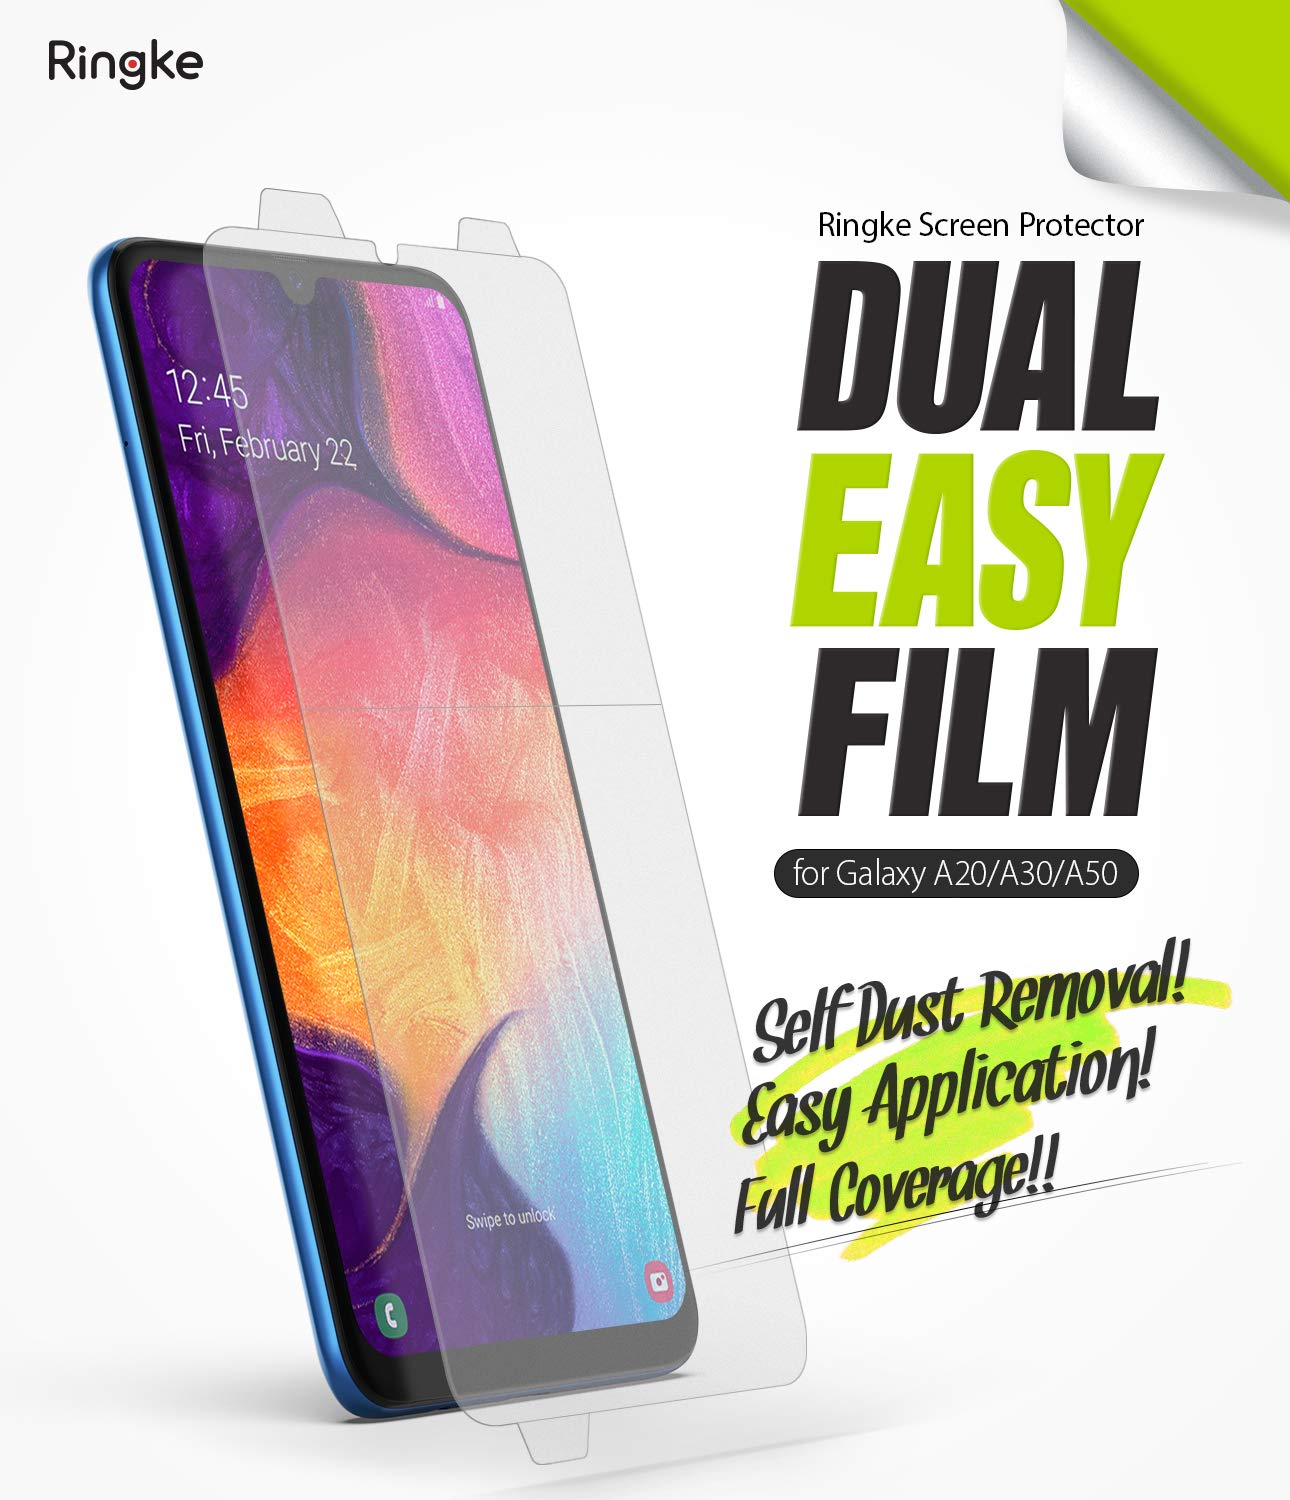 Ringke Dual Easy Film [2 Pack] Compatible with Galaxy A30